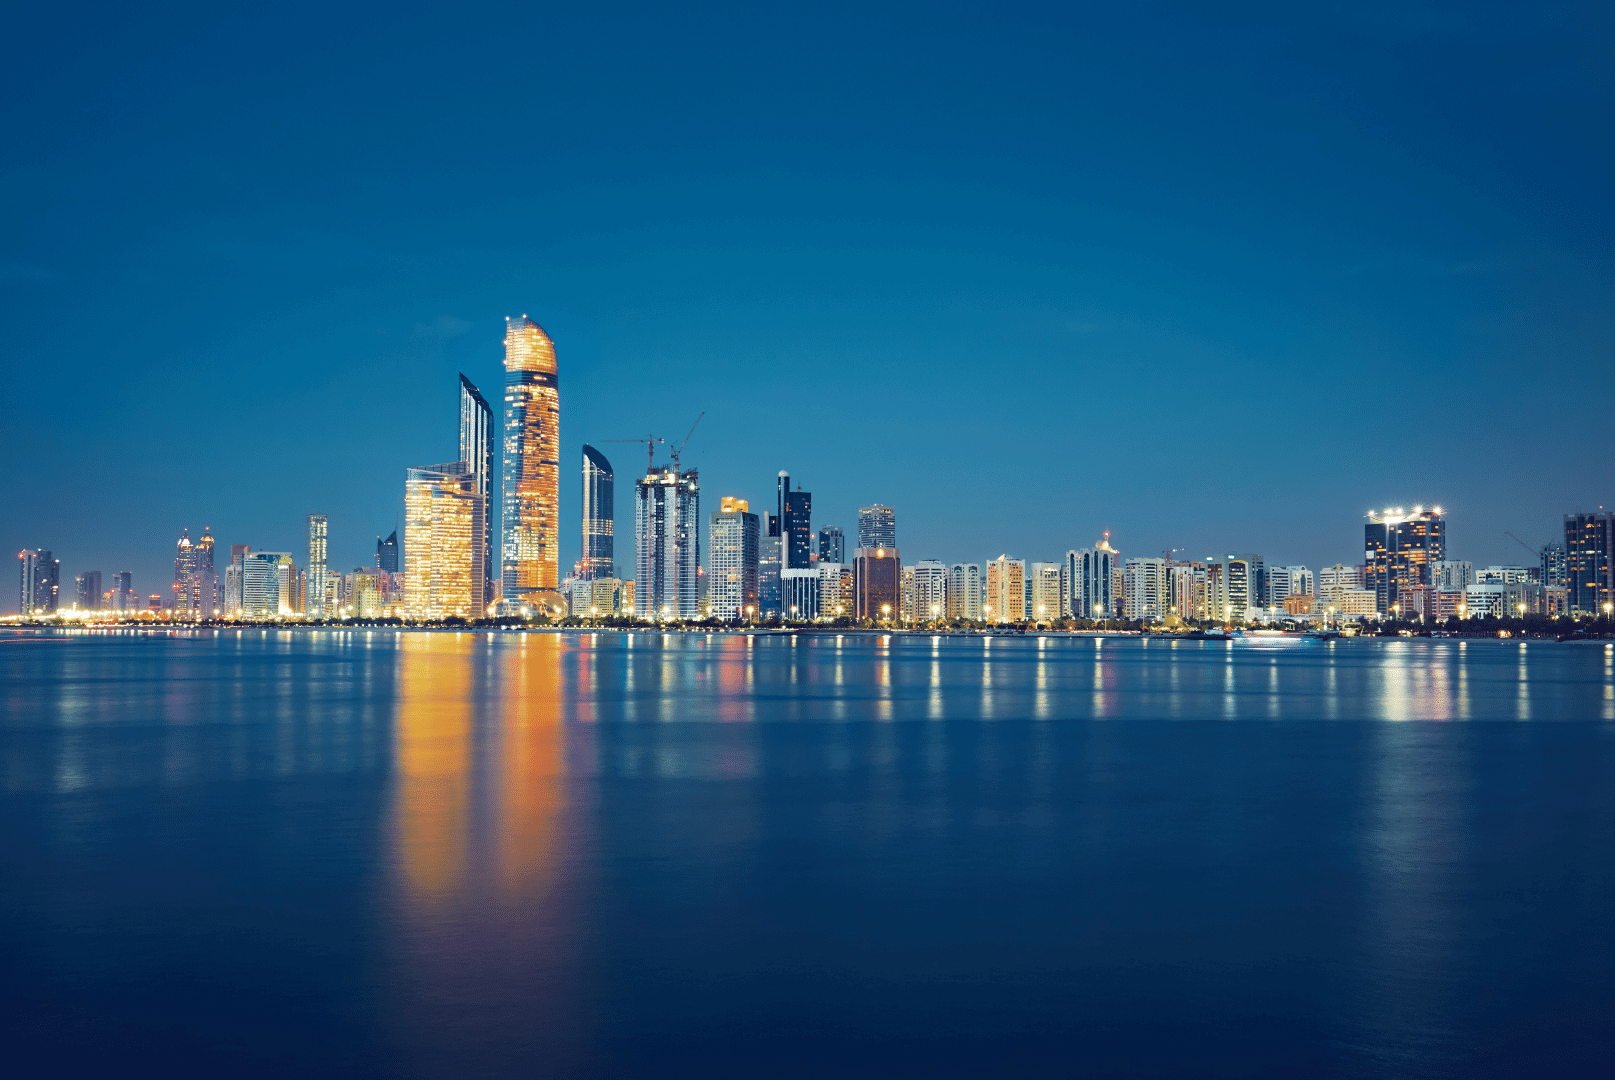 Registering with the Abu Dhabi Chamber of Commerce and Industry